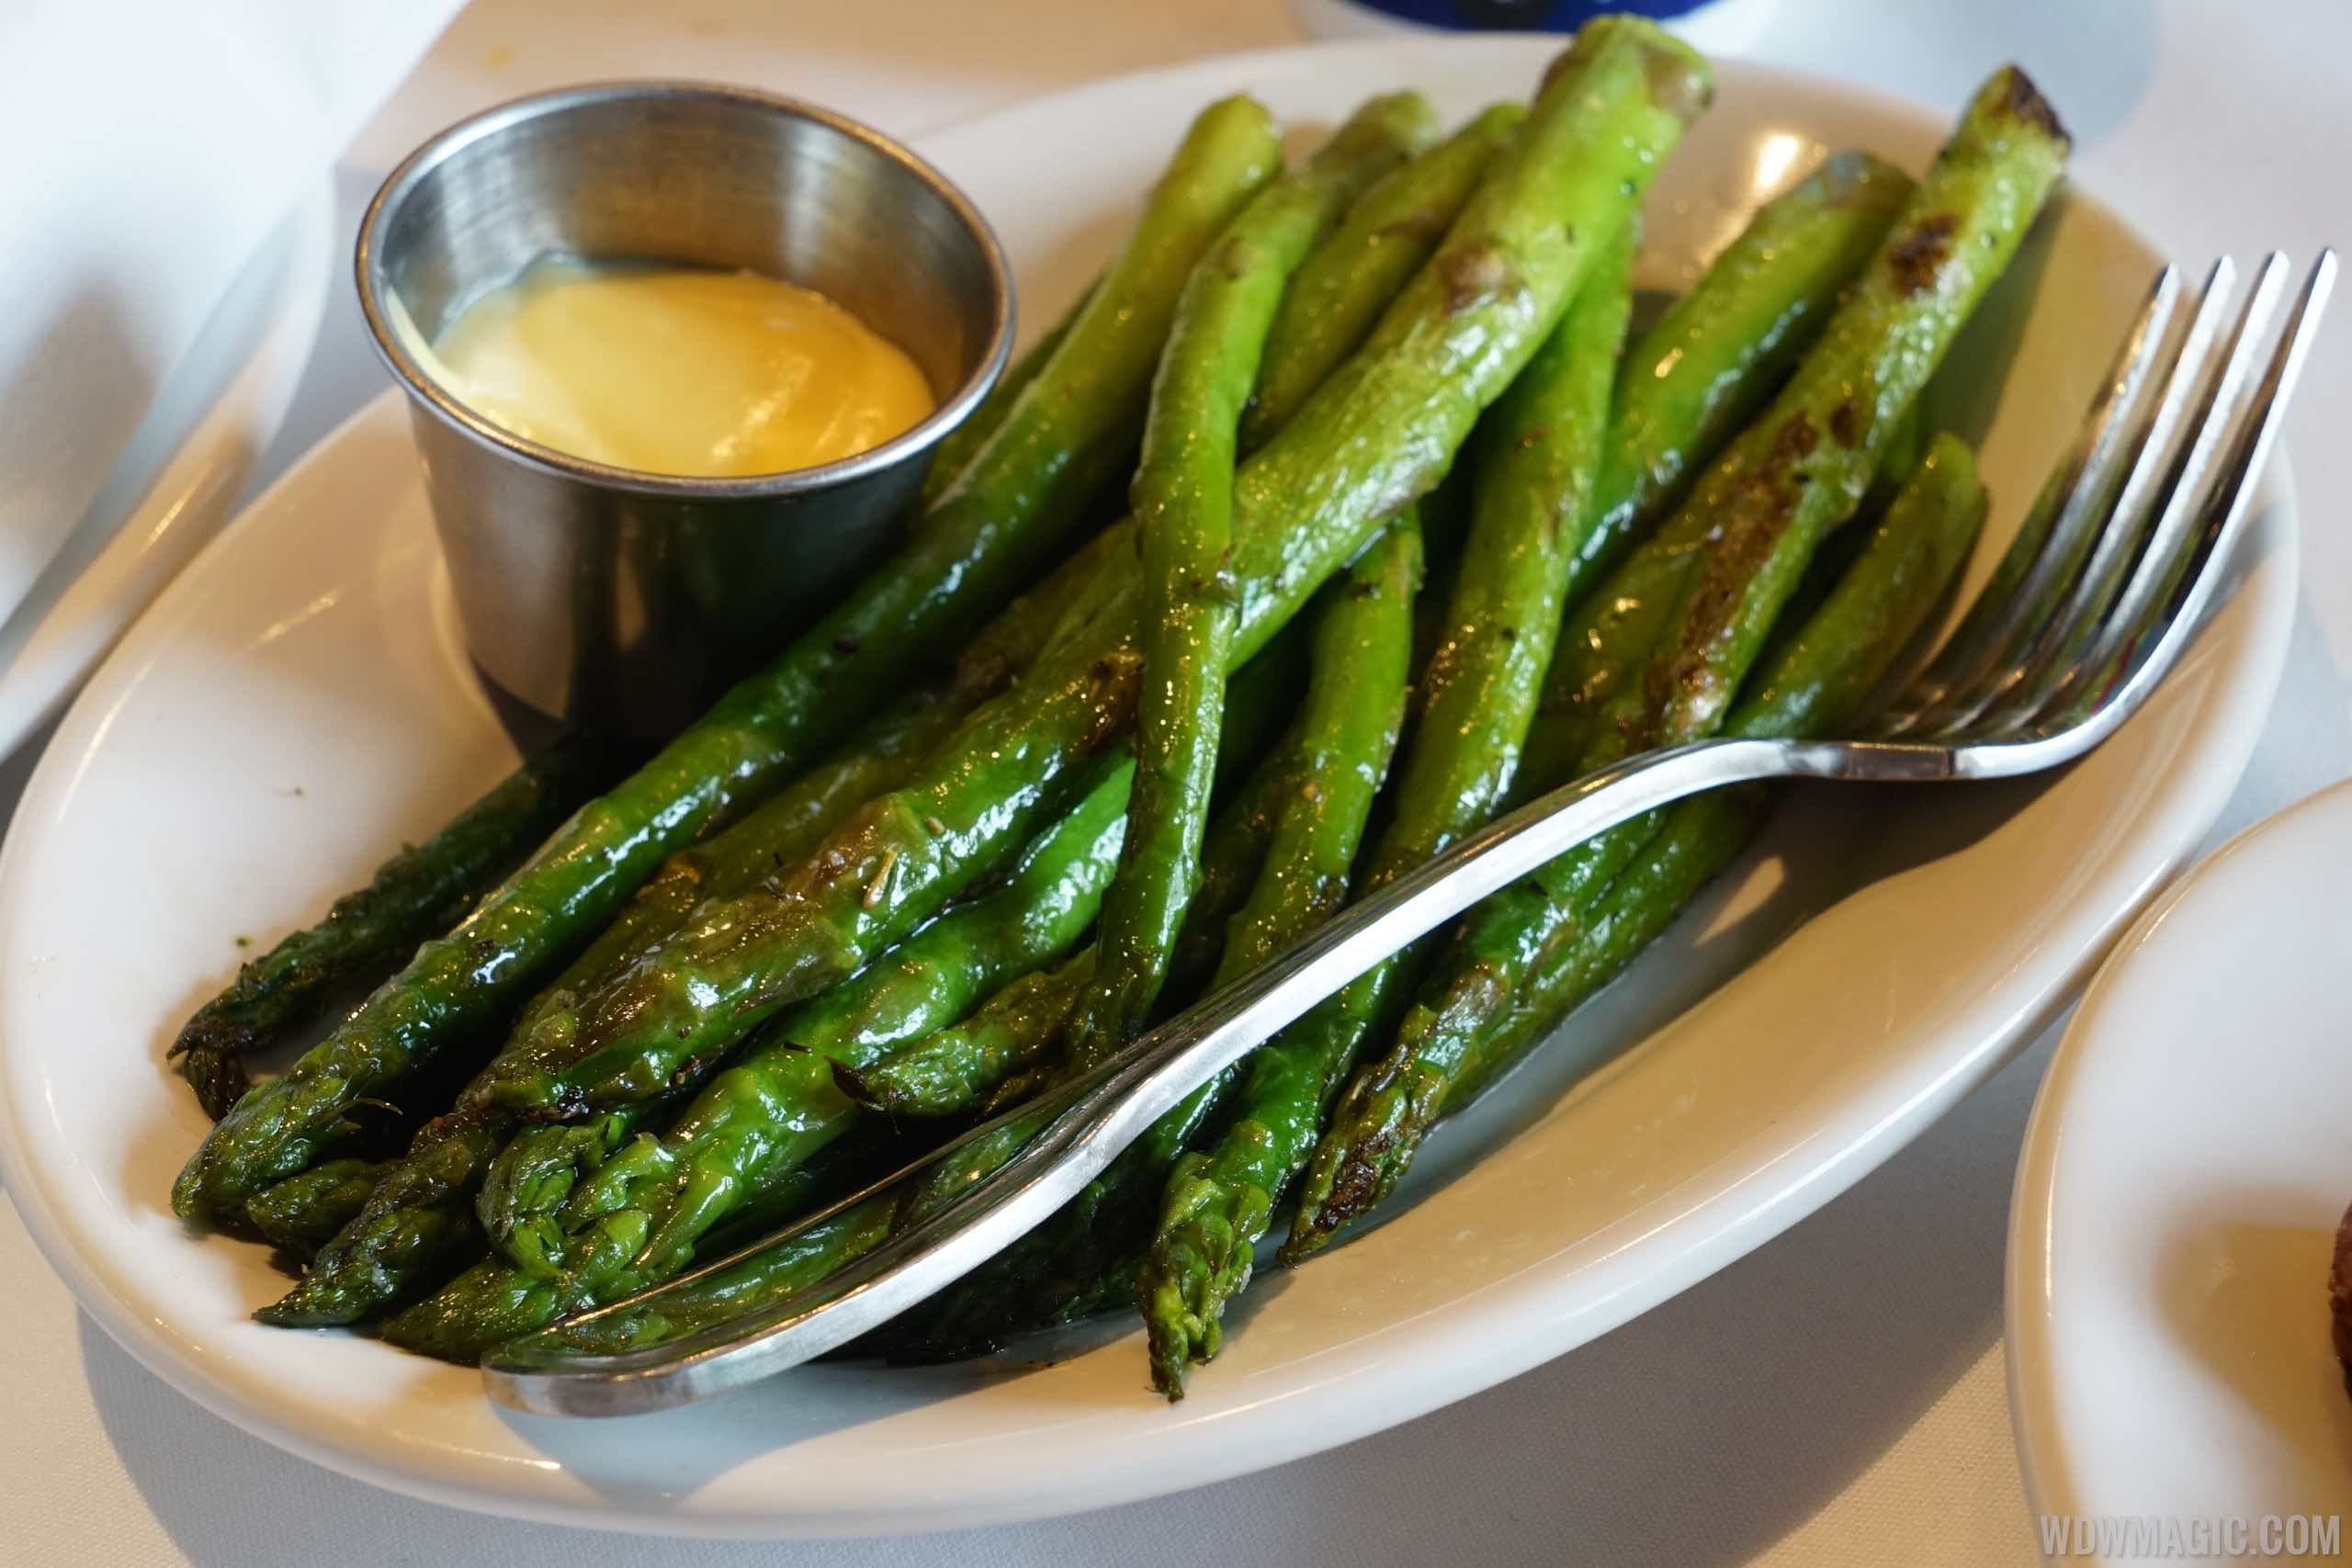 The BOATHOUSE Food - Grilled Asparagus